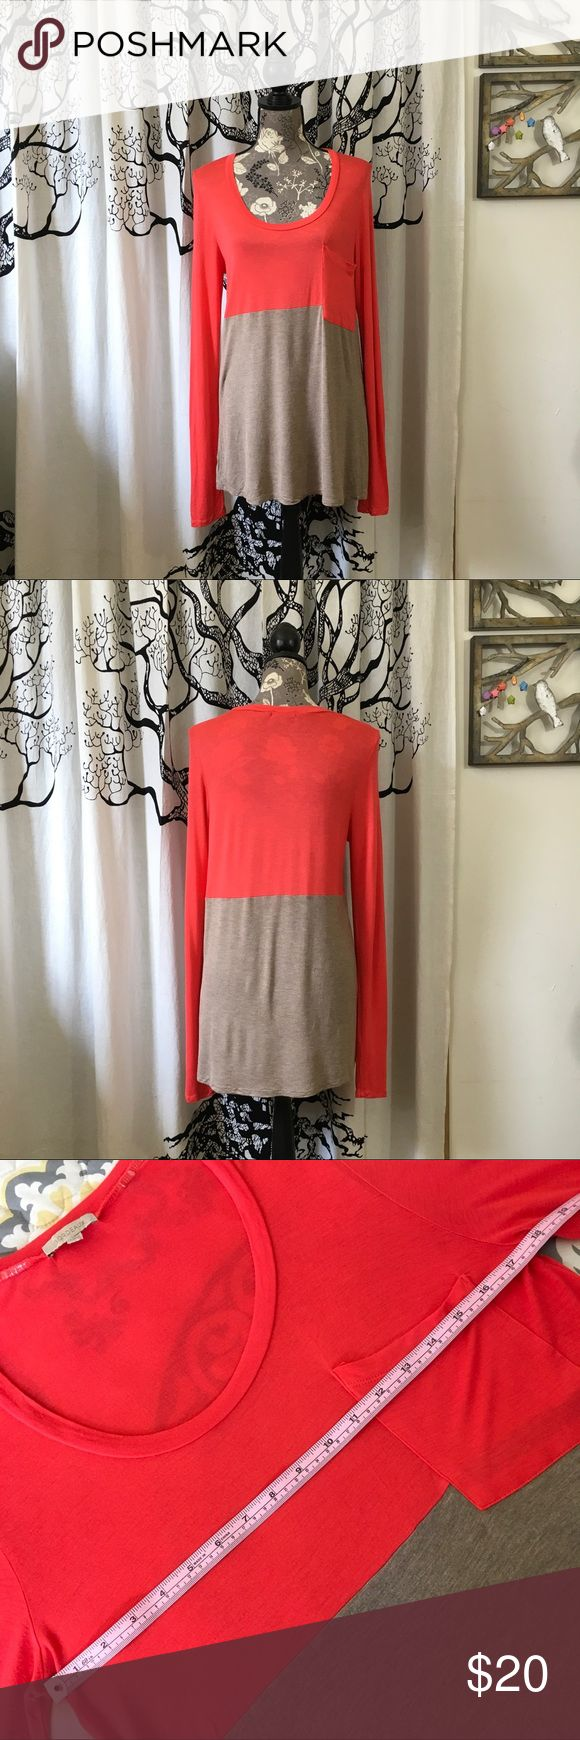 NWOT Bordeaux Lightweight Colorblock Slouchy Tunic Amazingly soft super lightweight colorblock tunic by Bordeaux in a orangy-red and heathered tan. Single pocket. Slouchy, oversized style is perfect with leggings, capris or skinny jeans. Perfect unworn condition. SZ S but could work for a M. Please double check measurements given in photos. So soft and comfortable, you won't want to take it off! Bordeaux Tops Tunics